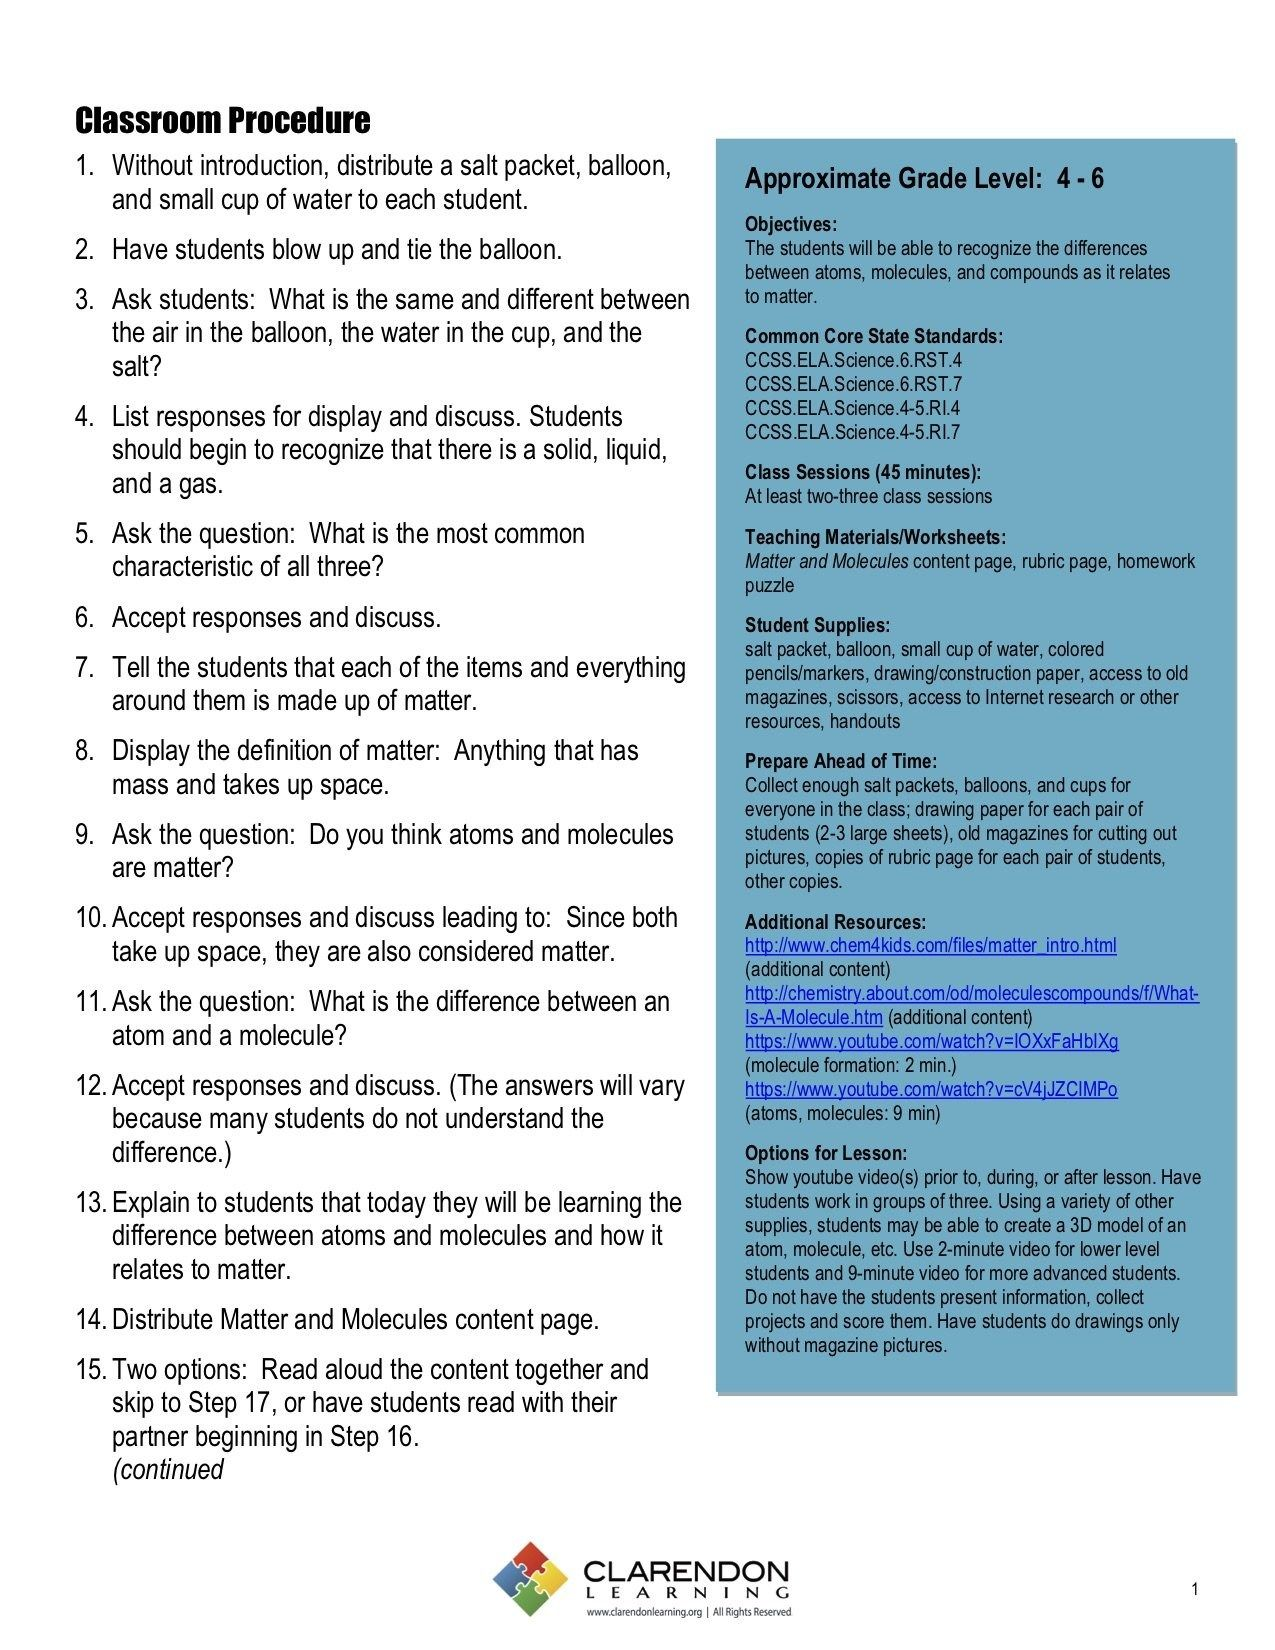 Common Core Worksheets 4th Grade All About Worksheet Common Core Math Worksheets Reading Comprehension Worksheets Math Worksheets